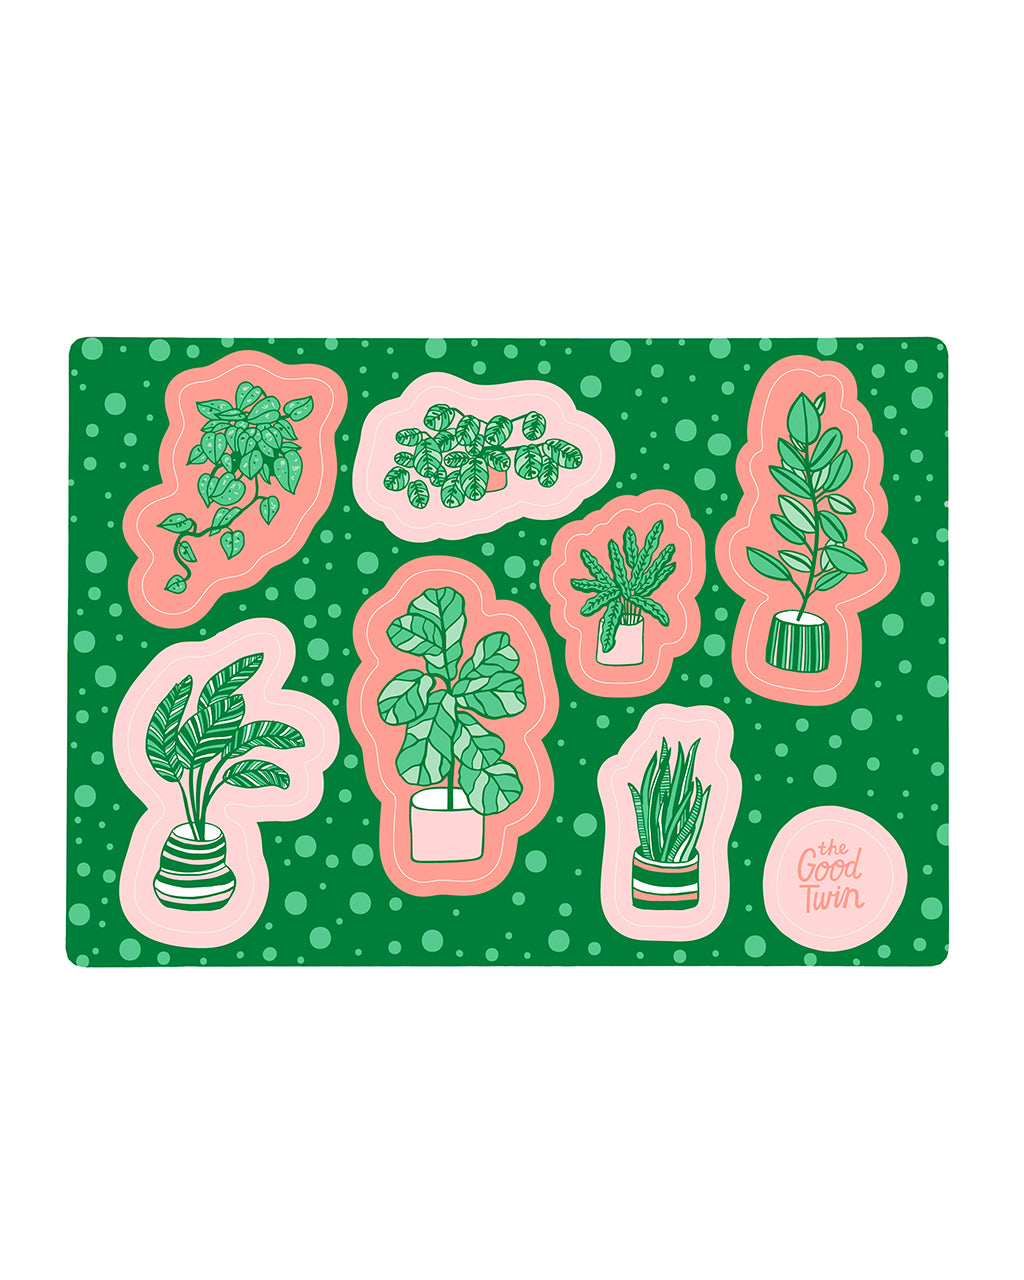 These stickers by The Good Twin feature 8 plants in a bright pink and green design.